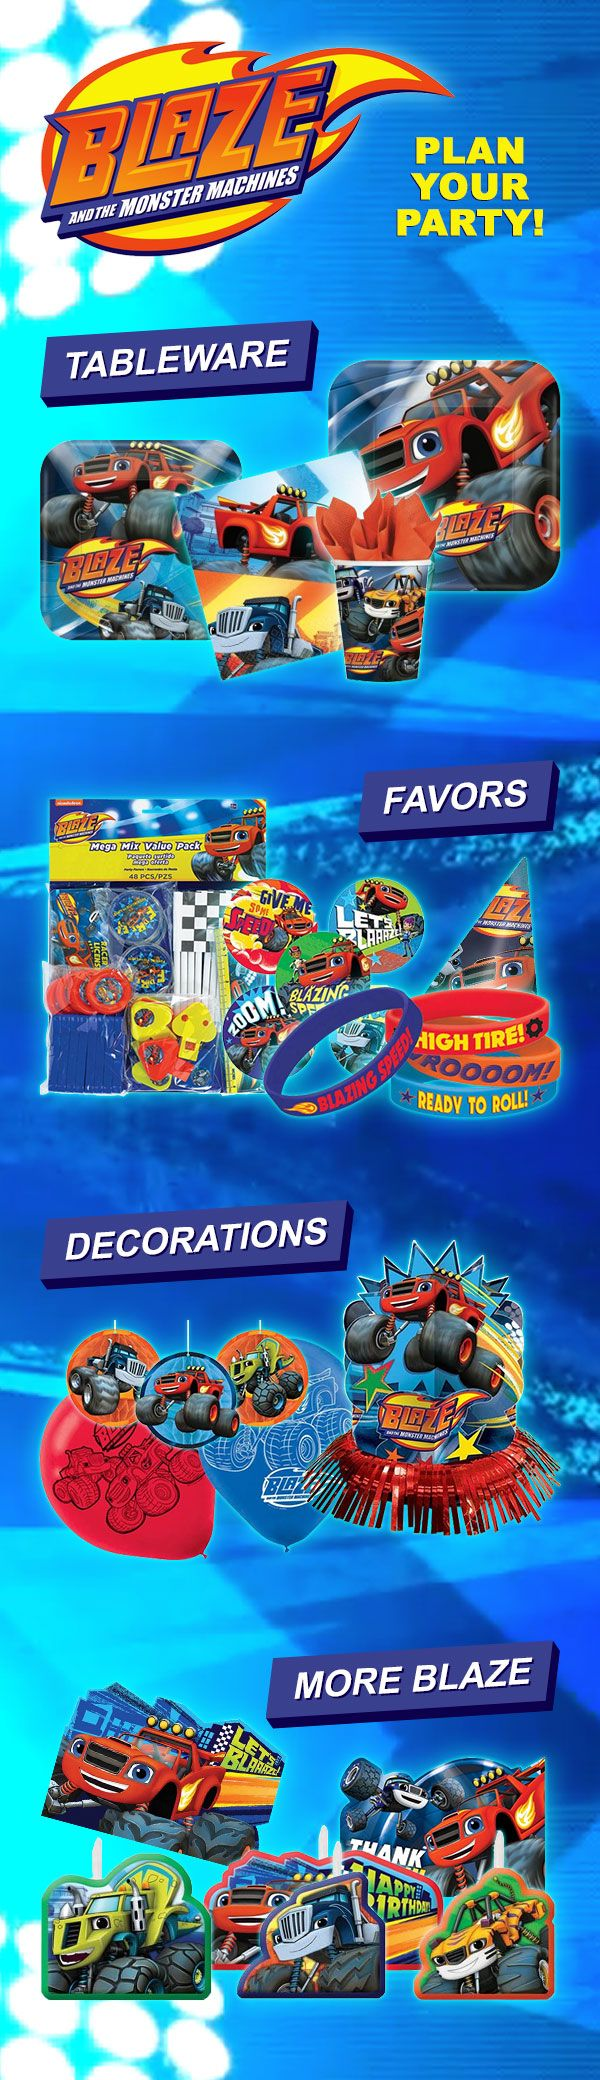 Plan your Blaze and the Monster Machines party with a few party supplies & other ideas for your party. These include Blaze and the Monster Machines favors, decorations, tableware, and more.